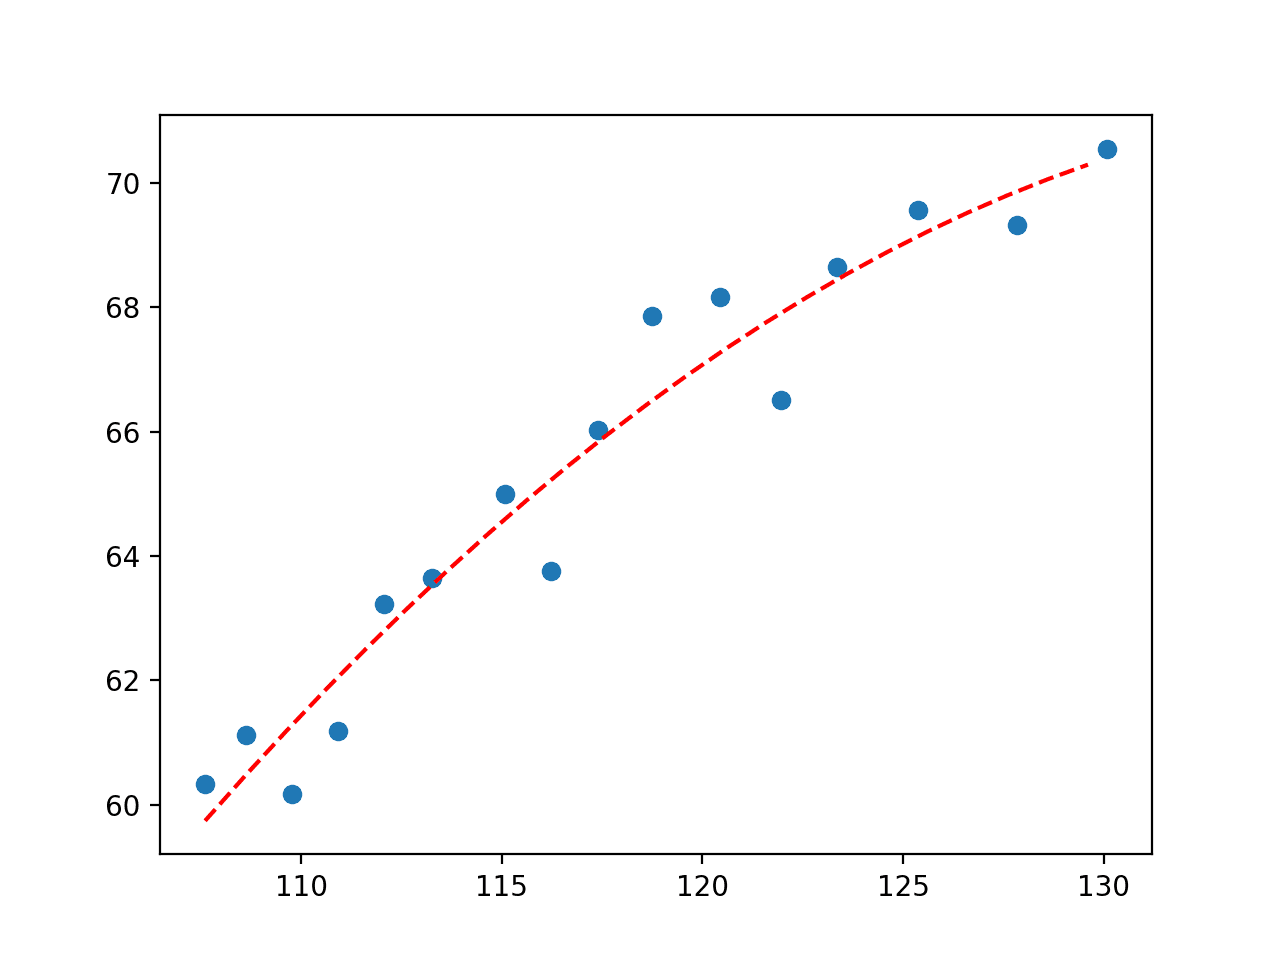 Plot of Second Degree Polynomial Fit to Economic Dataset